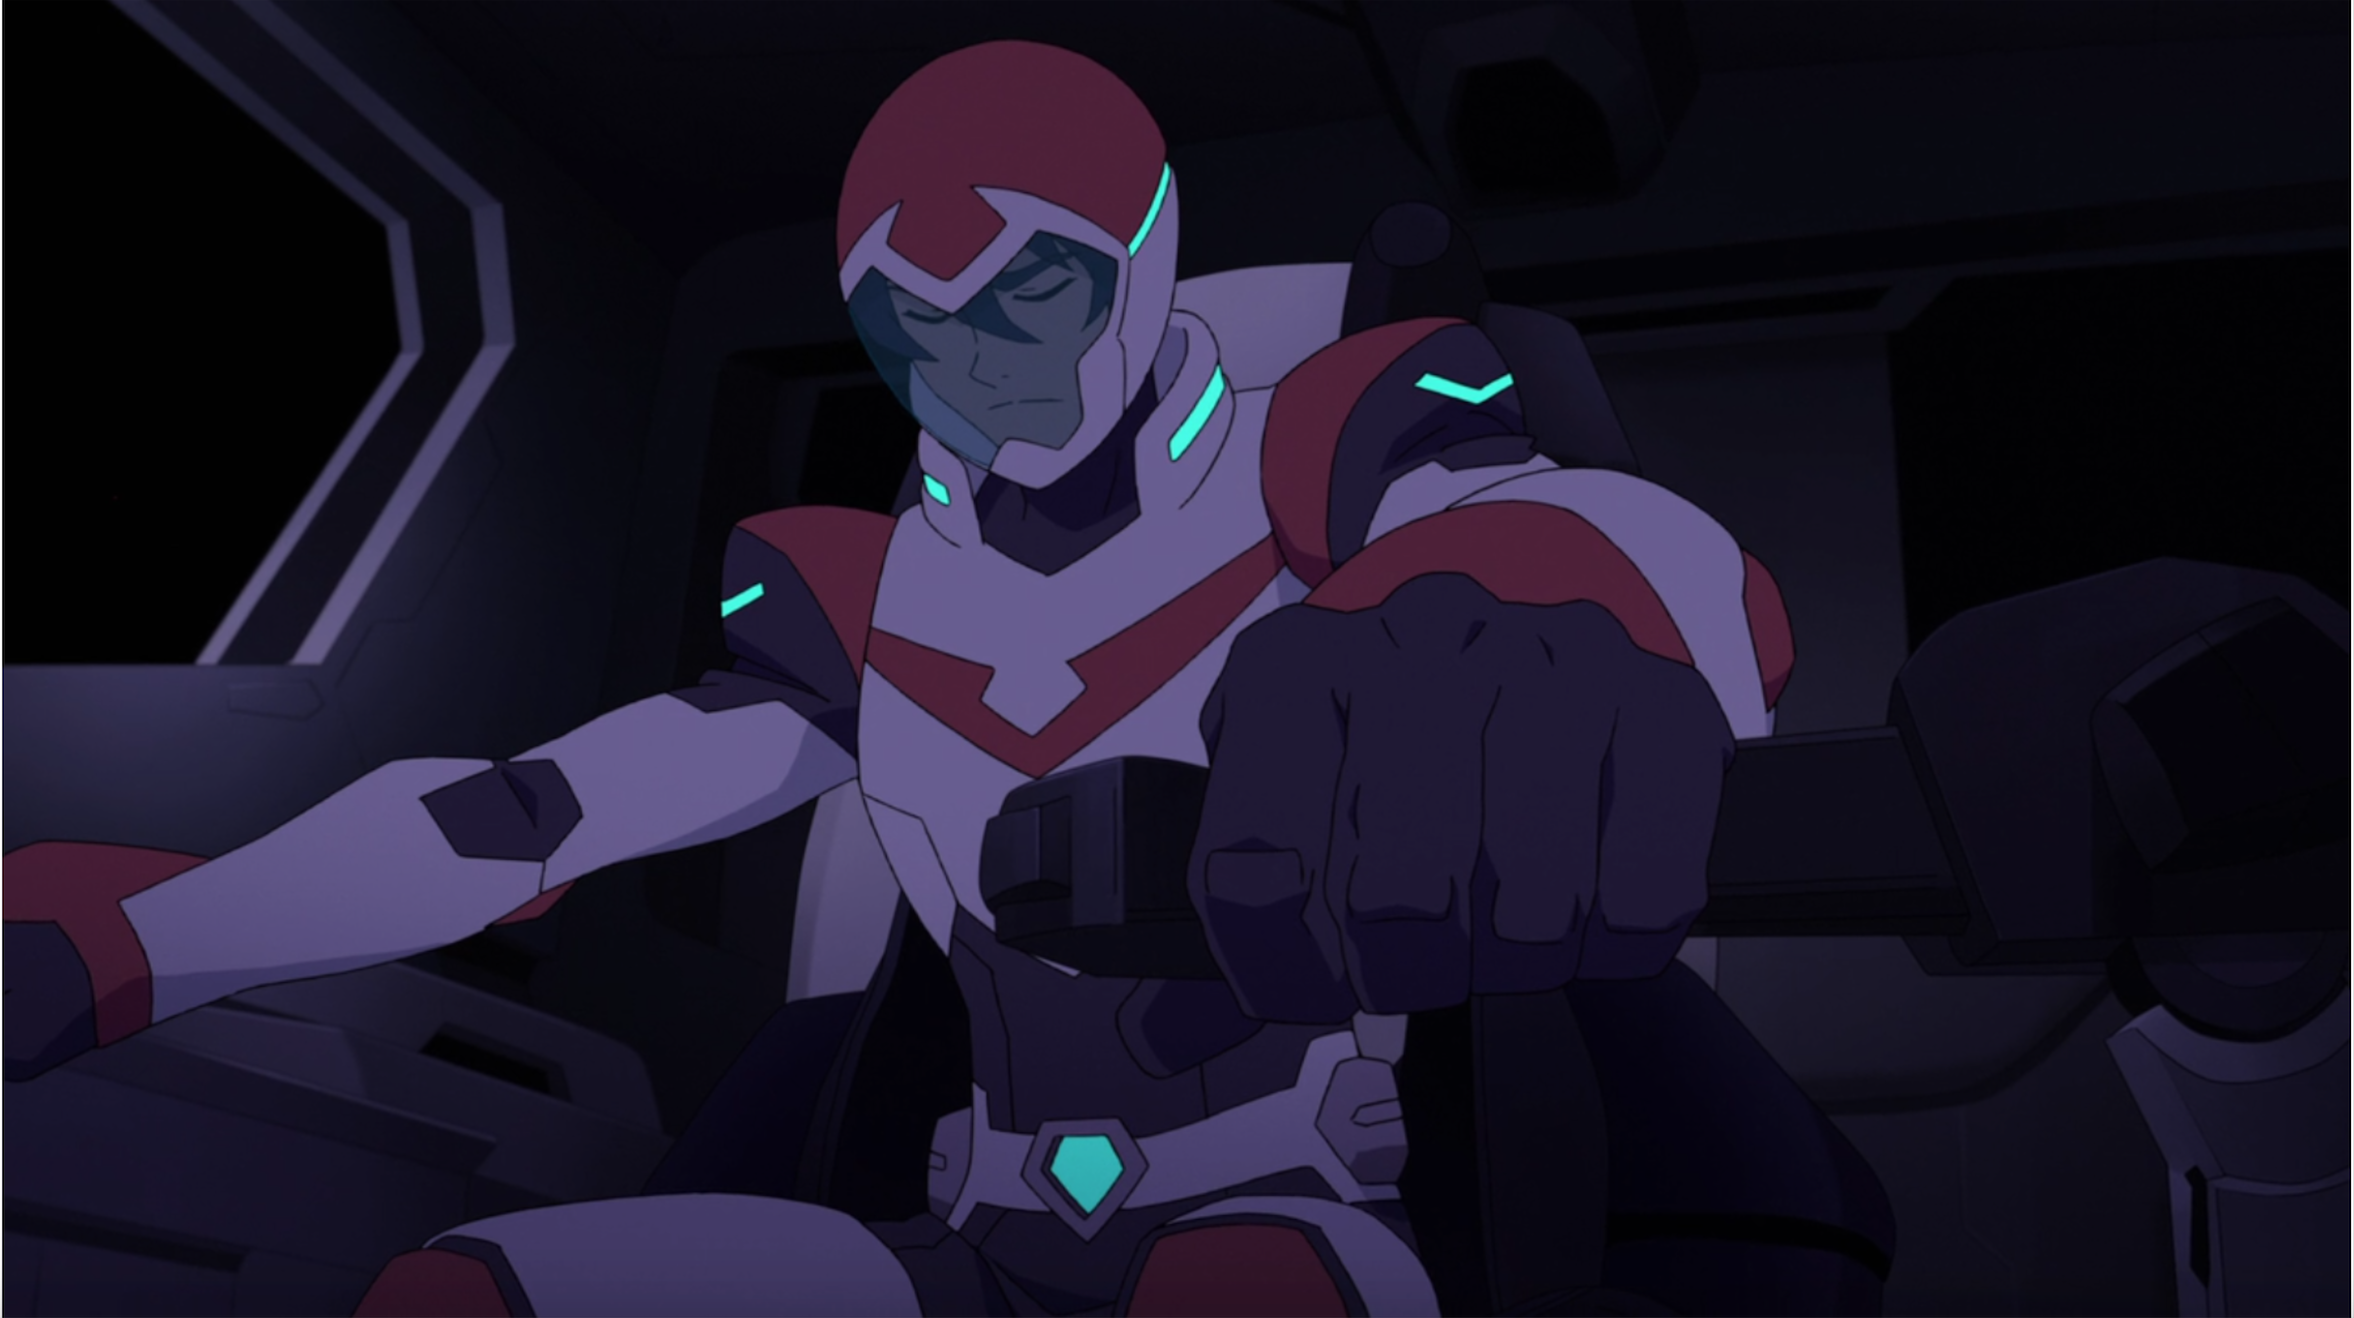 Keith To Himself I Know You Want This For Me Shiro But I M Not You I Can T Lead Them Like You From Voltron Legendary Defender Voltron Favorite Character